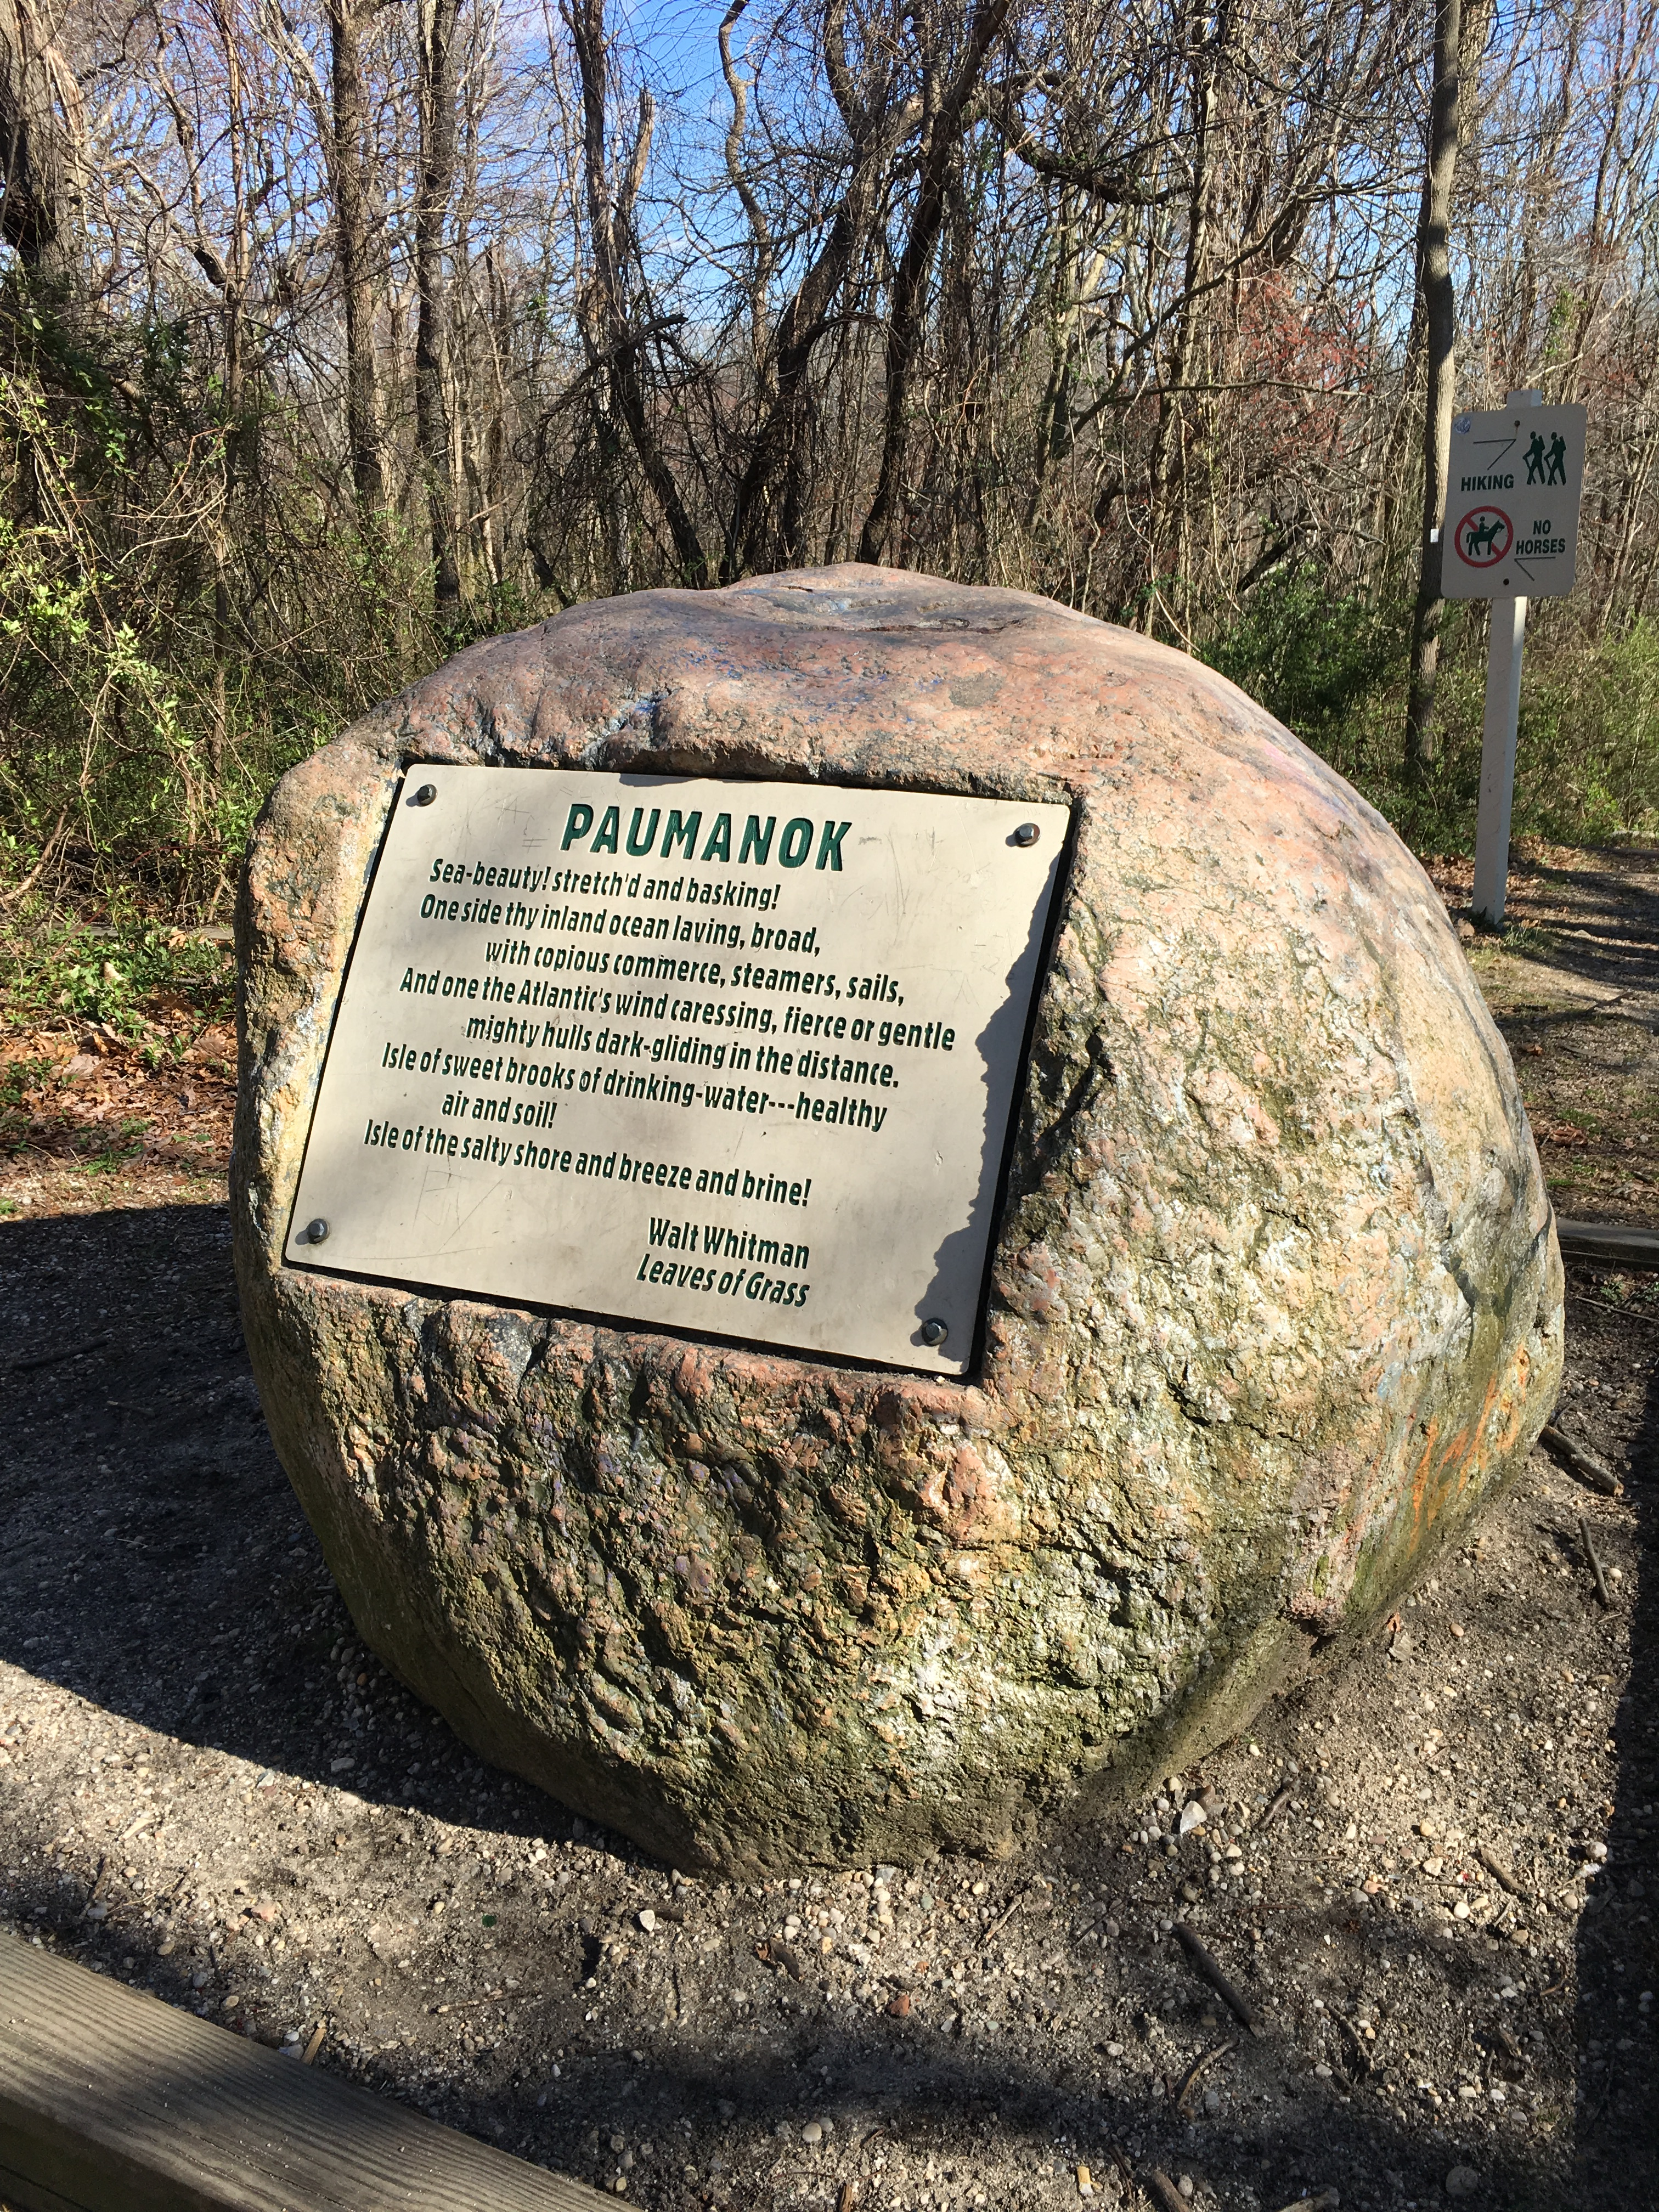 From the valley of Park Avenue to the highest point of Long Island, this boulder marks the summit of Jayne's Hill, a favorite spot for Walt Whitman to visit.